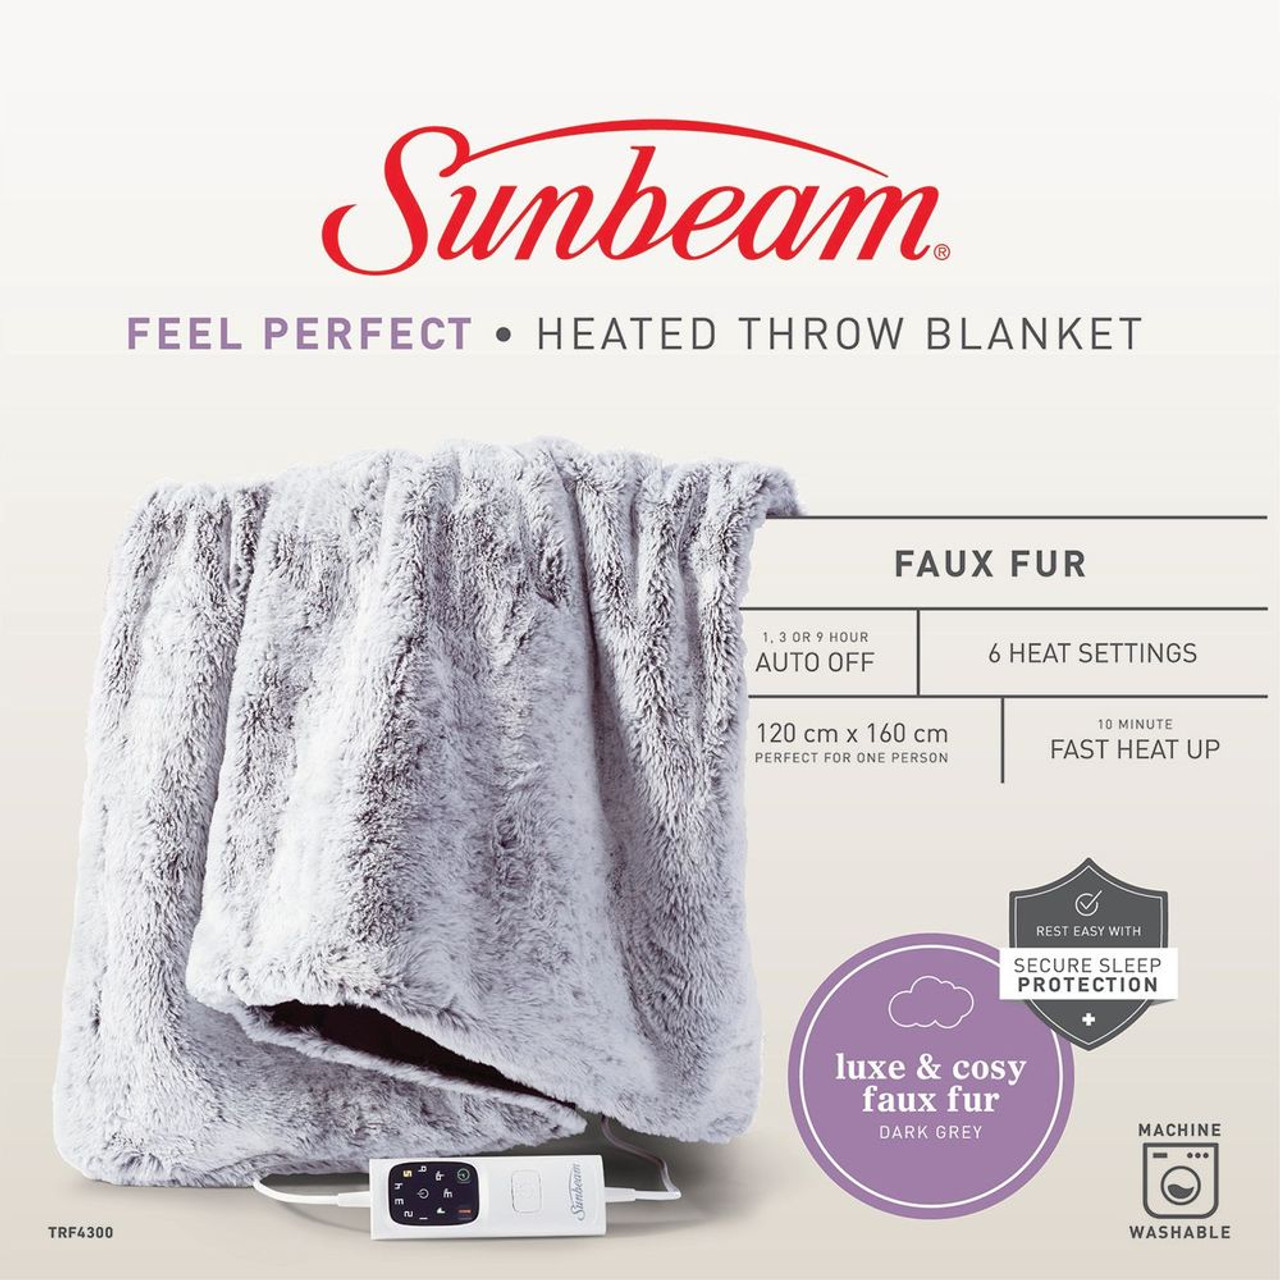 Sunbeam TRF4300 Sunbeam Feel Perfect Sherpa Fleece Heated Throw Blanket